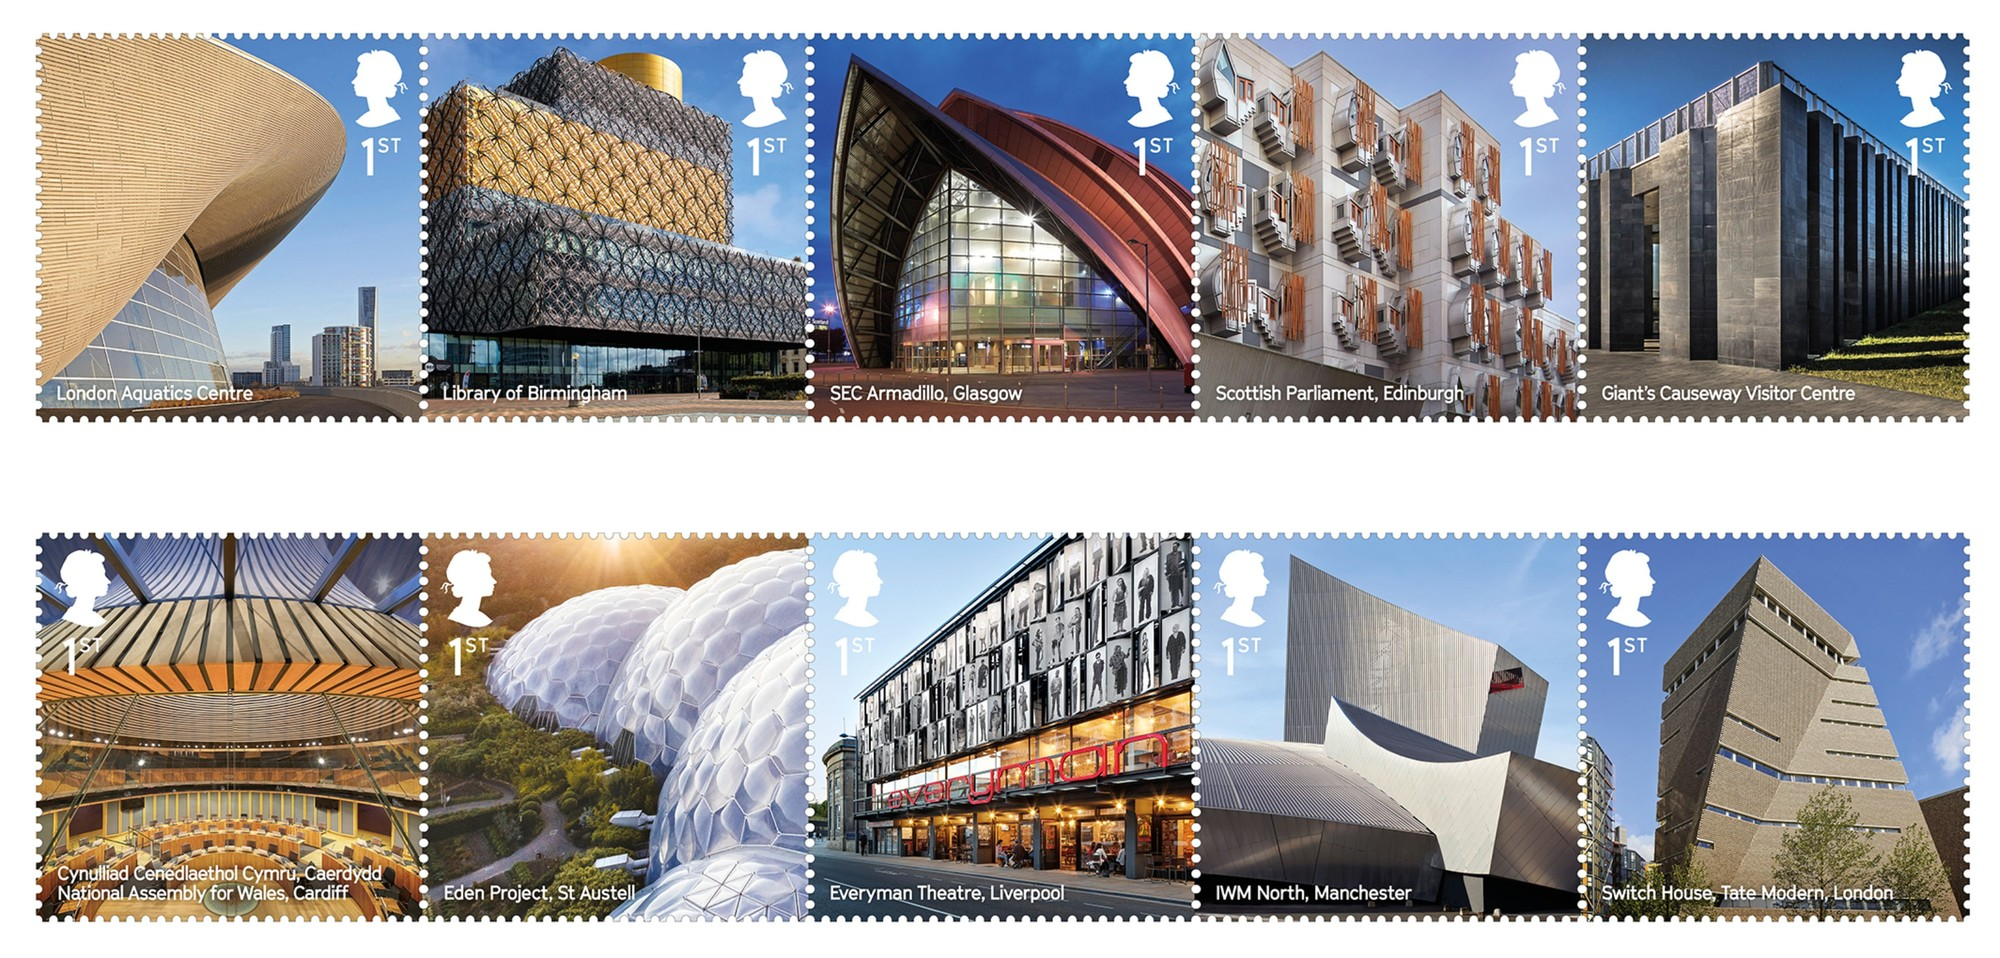 The UK's Best Contemporary Architecture Celebrated in New Stamp Series